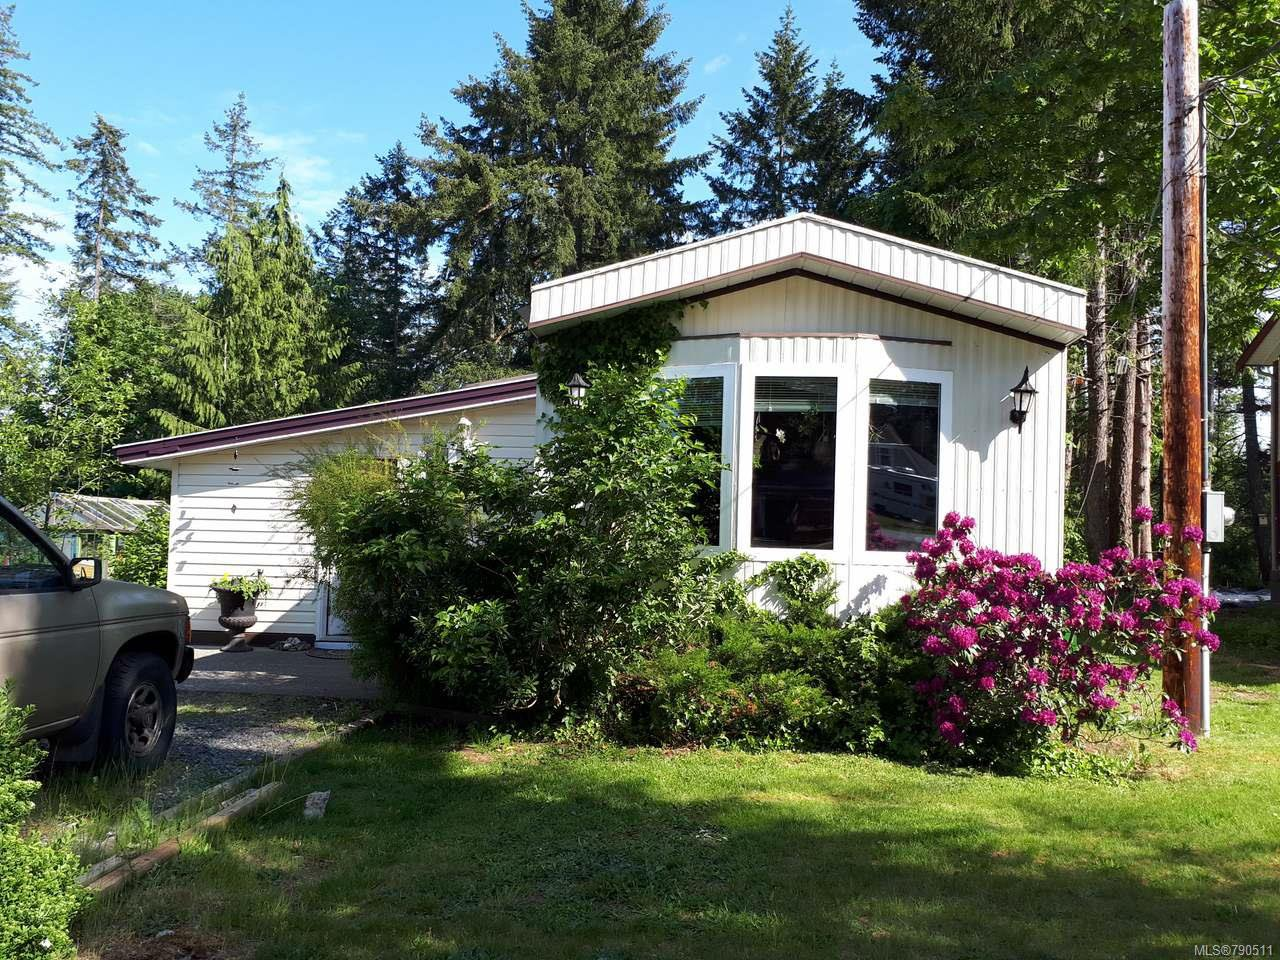 Main Photo: 2550 COPPERFIELD ROAD in COURTENAY: CV Courtenay City Manufactured Home for sale (Comox Valley)  : MLS®# 790511